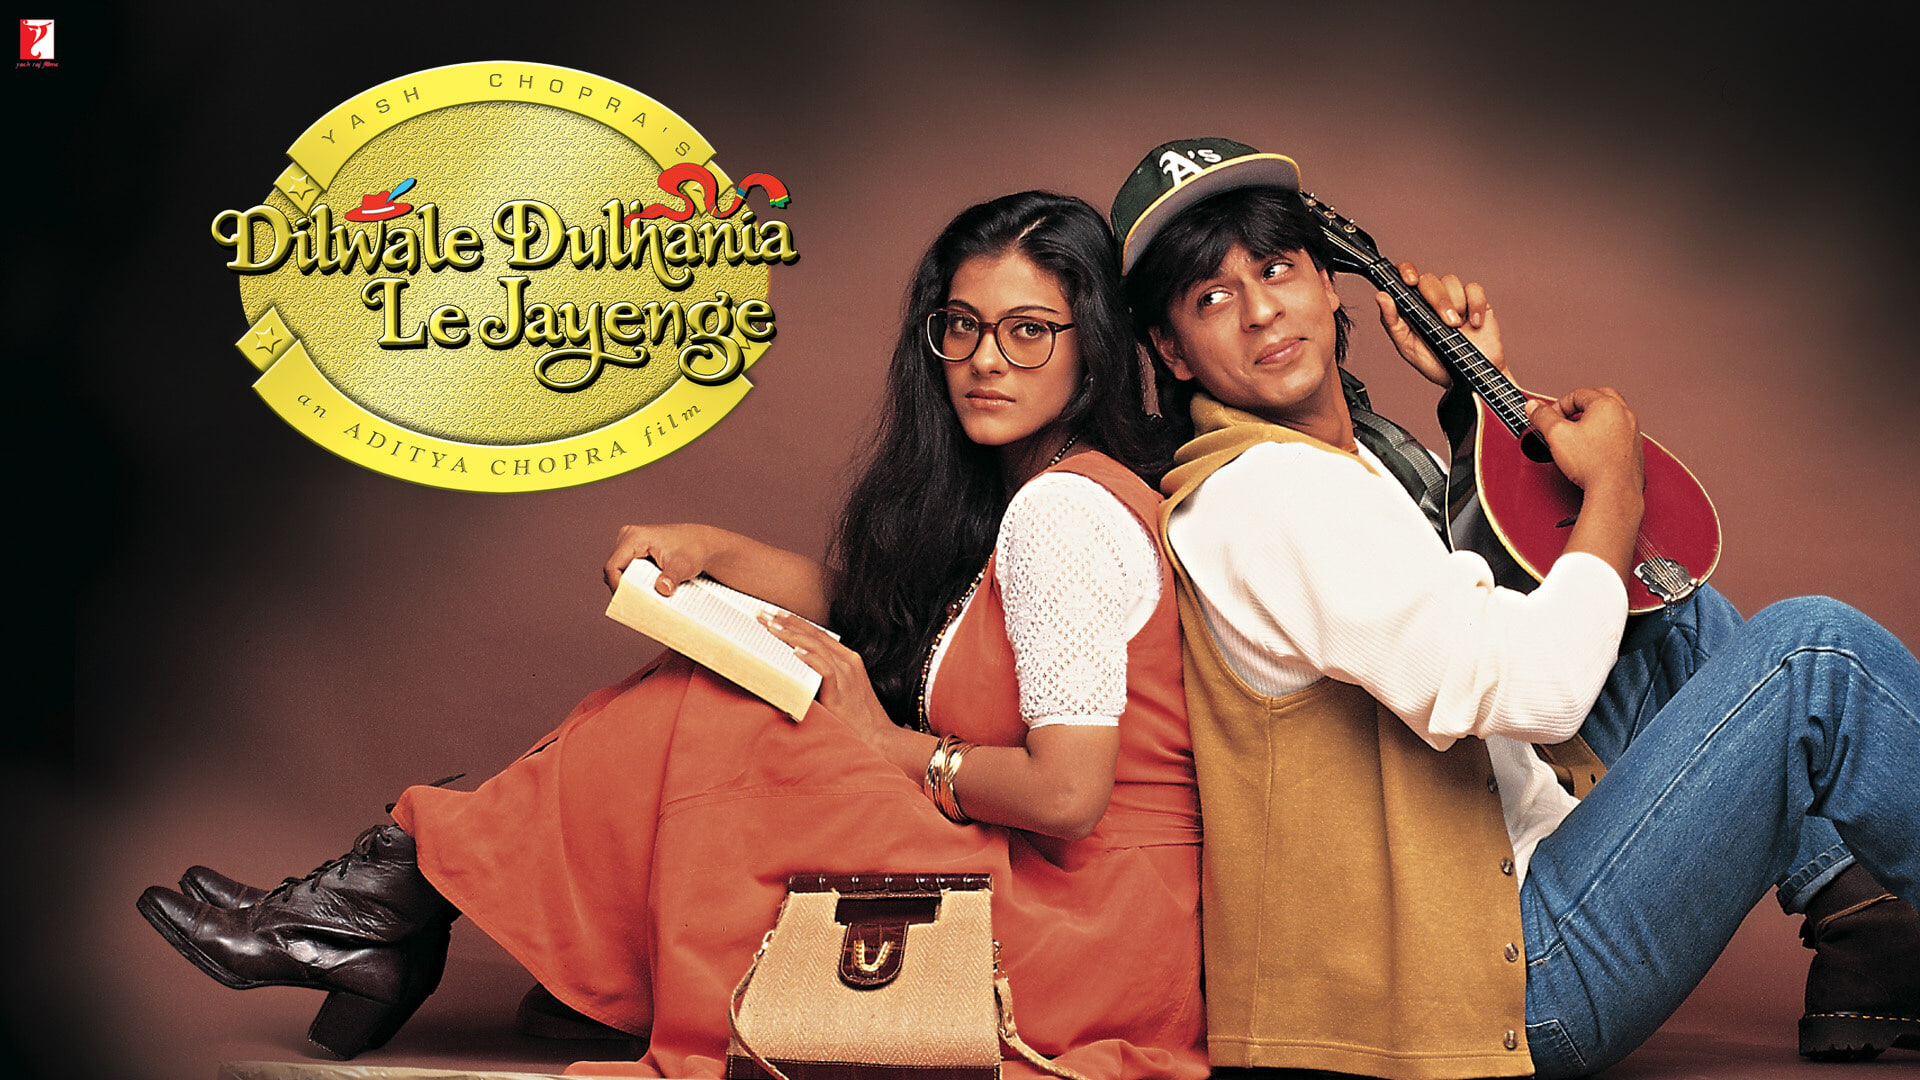 Here are 7 classic ddlj moments to celebrate twenty years of the iconic film